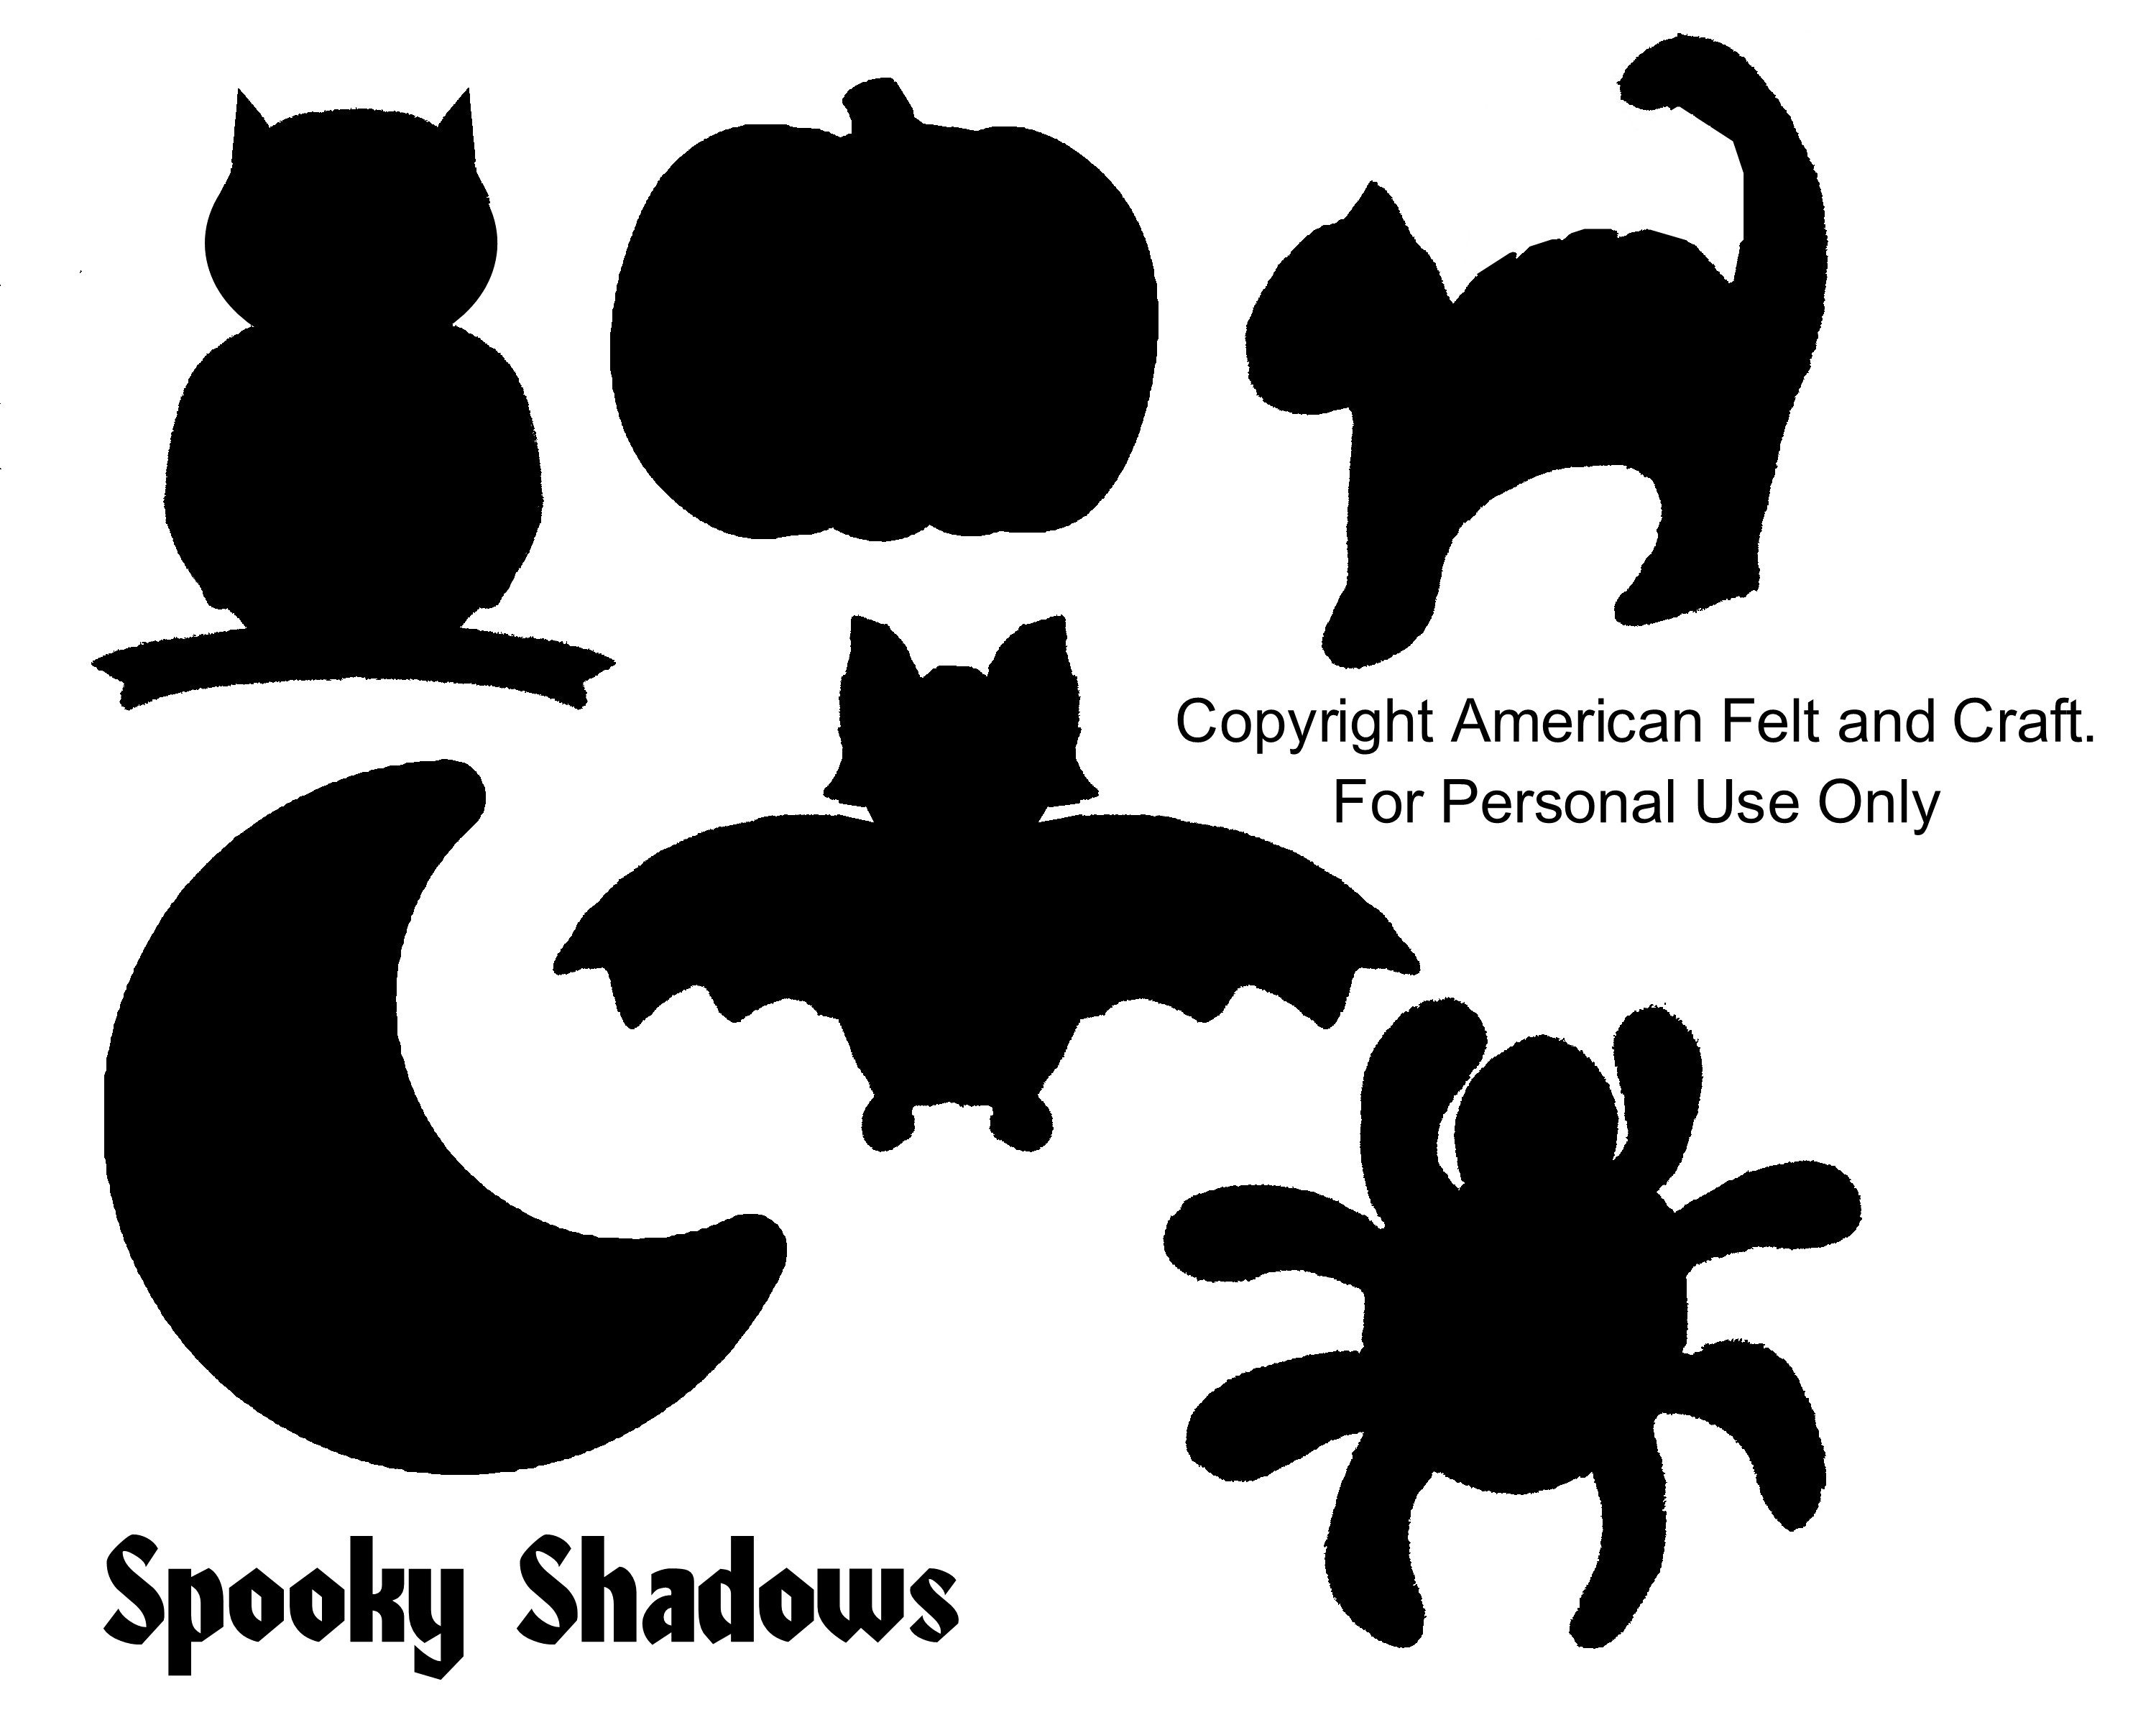 Spooky Shadows DIY Halloween Felt Bean Bag Tutorial